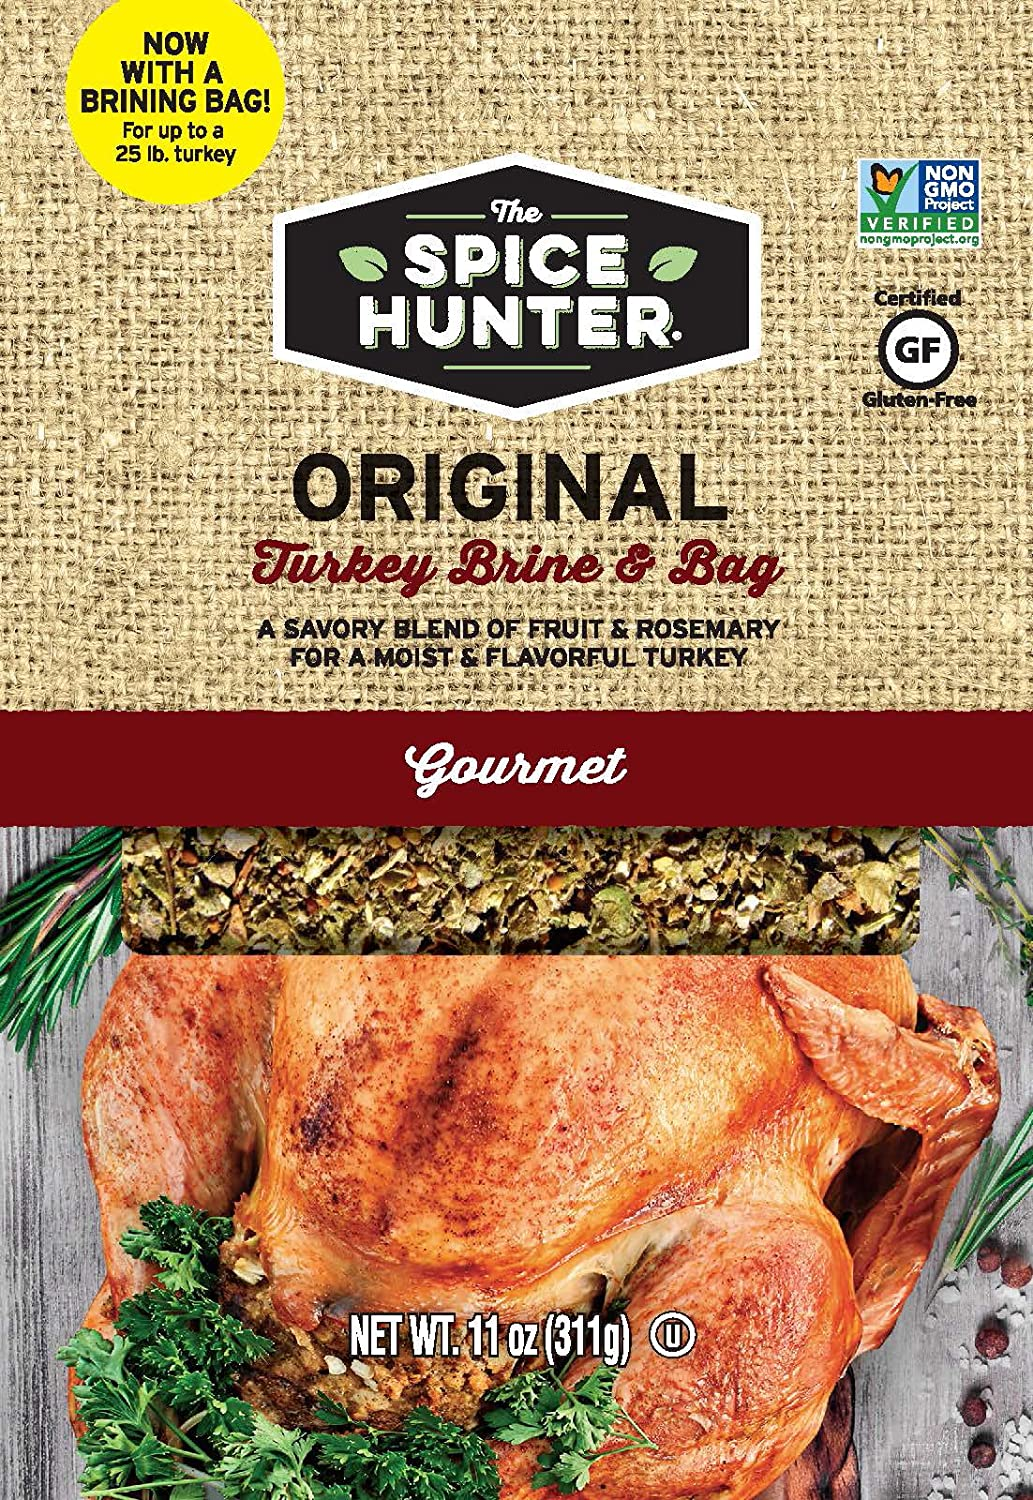 Spice Hunter Turkey Brine & Bag, Original, 11 Ounce